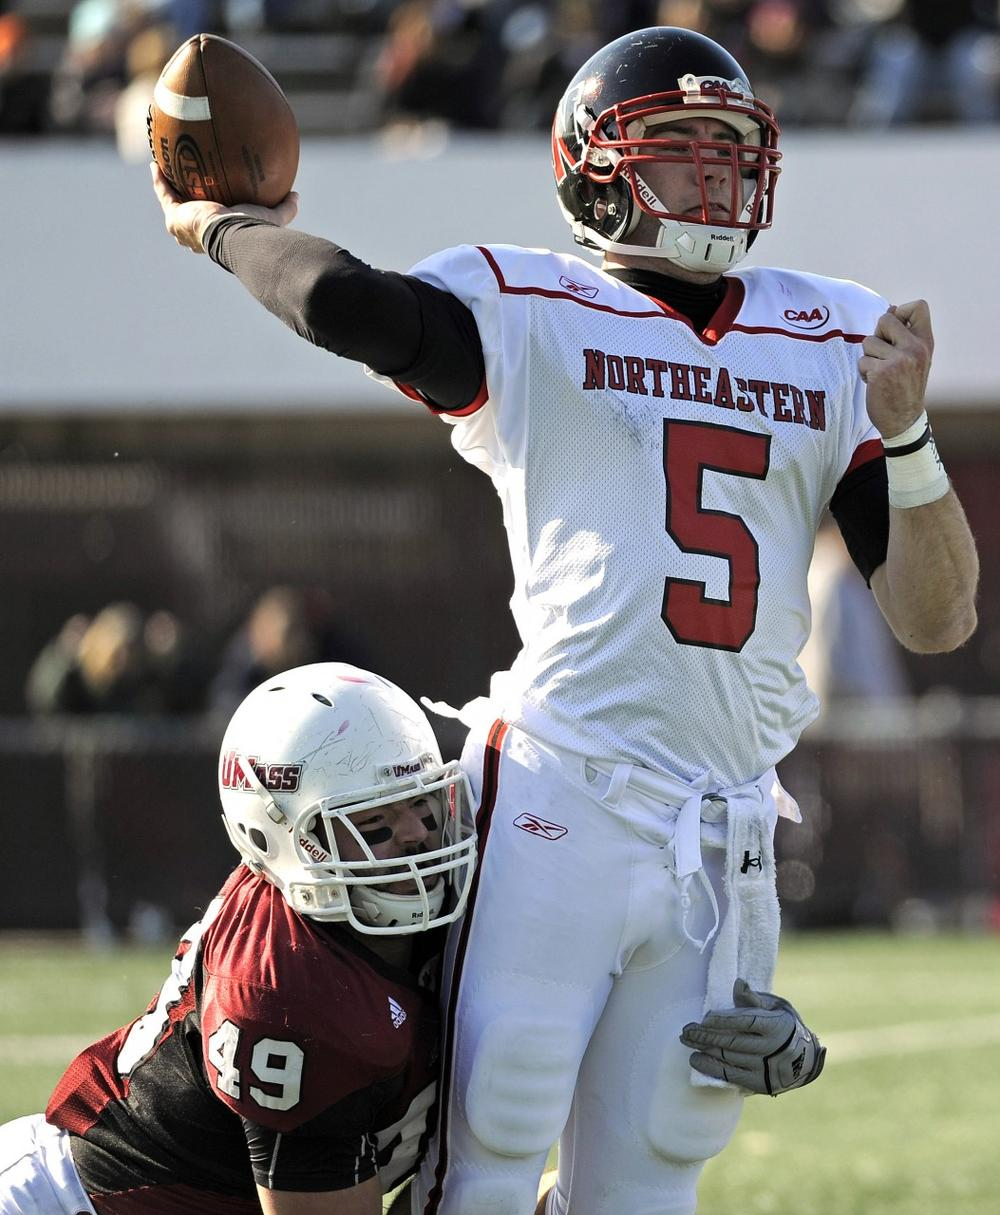 Northeastern quarterback Alex Dulski is sacked during the first half of an NCAA game earlier this month. Northeastern is dropping its football program after 74 years, saying it's too expensive to maintain. (AP)